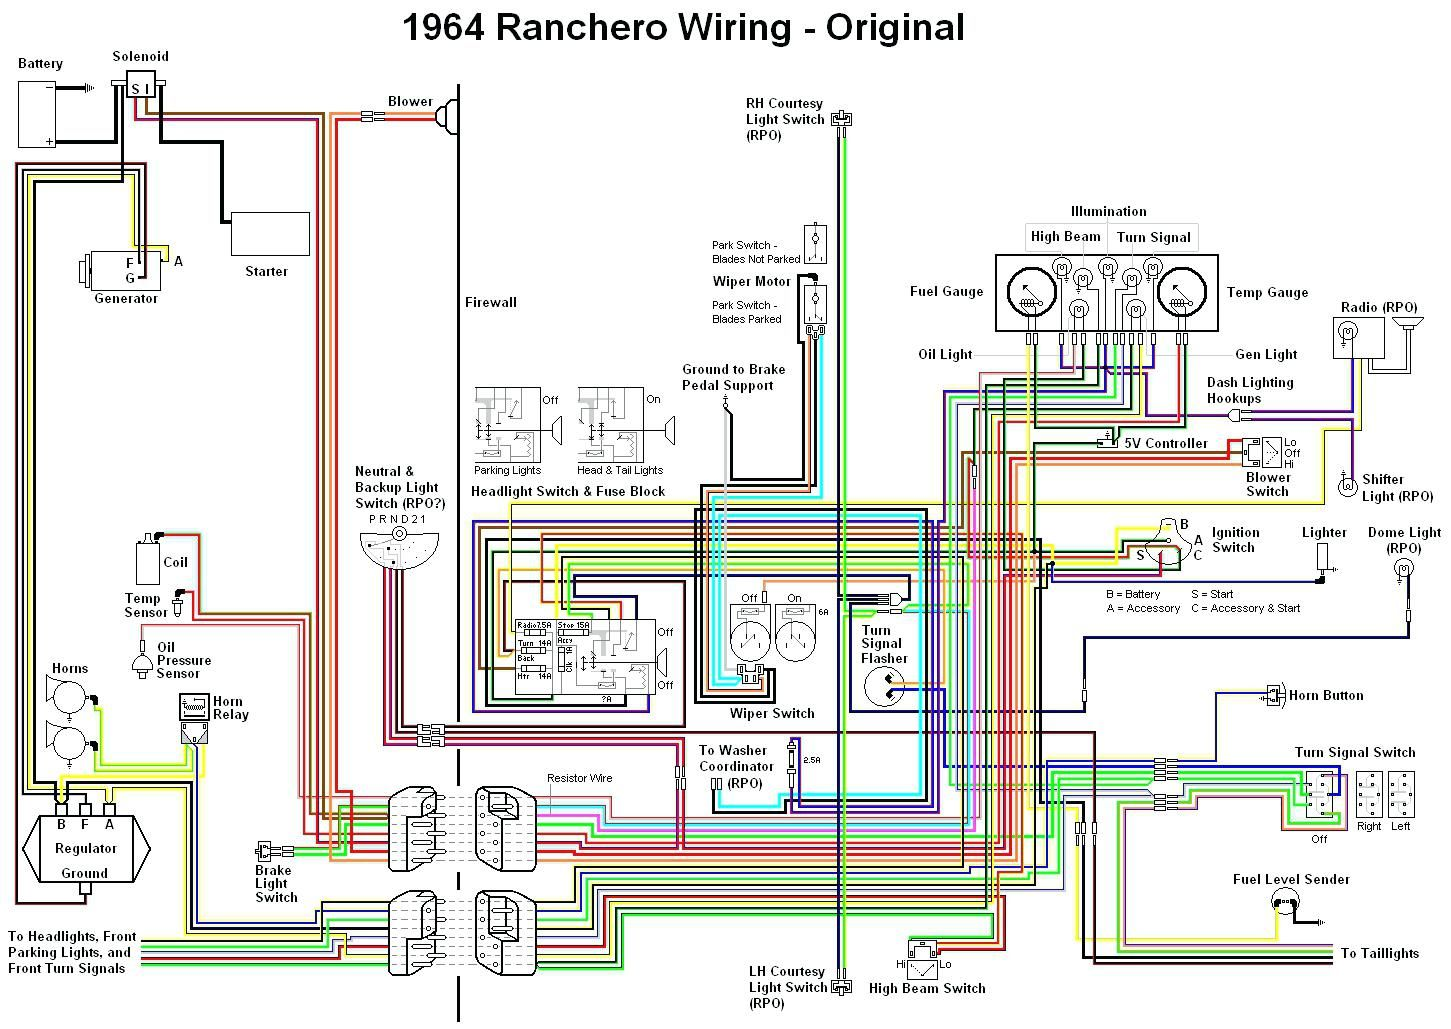 1964 Falcon Wiring Harness Free Download Diagram Schematic ... on